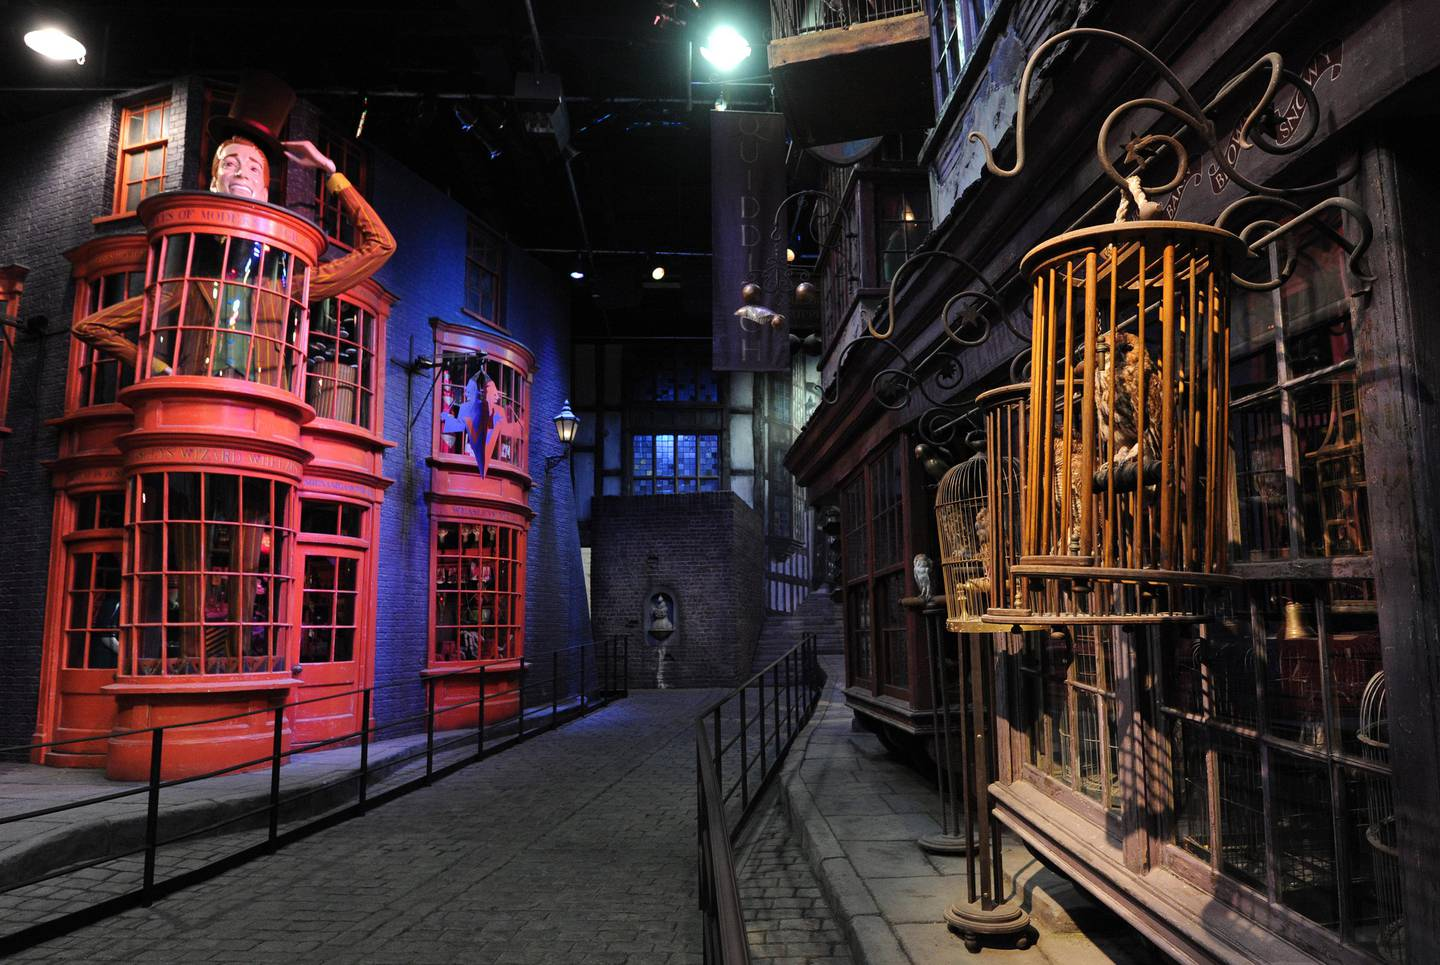 """TO GO WITH AFP STORY BY NATHALIE AURIOLA general view shows the stores that line Diagon Alley during a preview of the Warner Bros Harry Potter studio tour """"The Making of Harry Potter"""" in north London on March 26, 2012. """"The Making of Harry Potter"""", which opens on March 31, is the latest spin-off from the best-selling books about the boy wizard, promising a chance to re-live his adventures with a trip through the set of the blockbuster movies. AFP PHOTO/CARL COURT / AFP PHOTO / CARL COURT"""